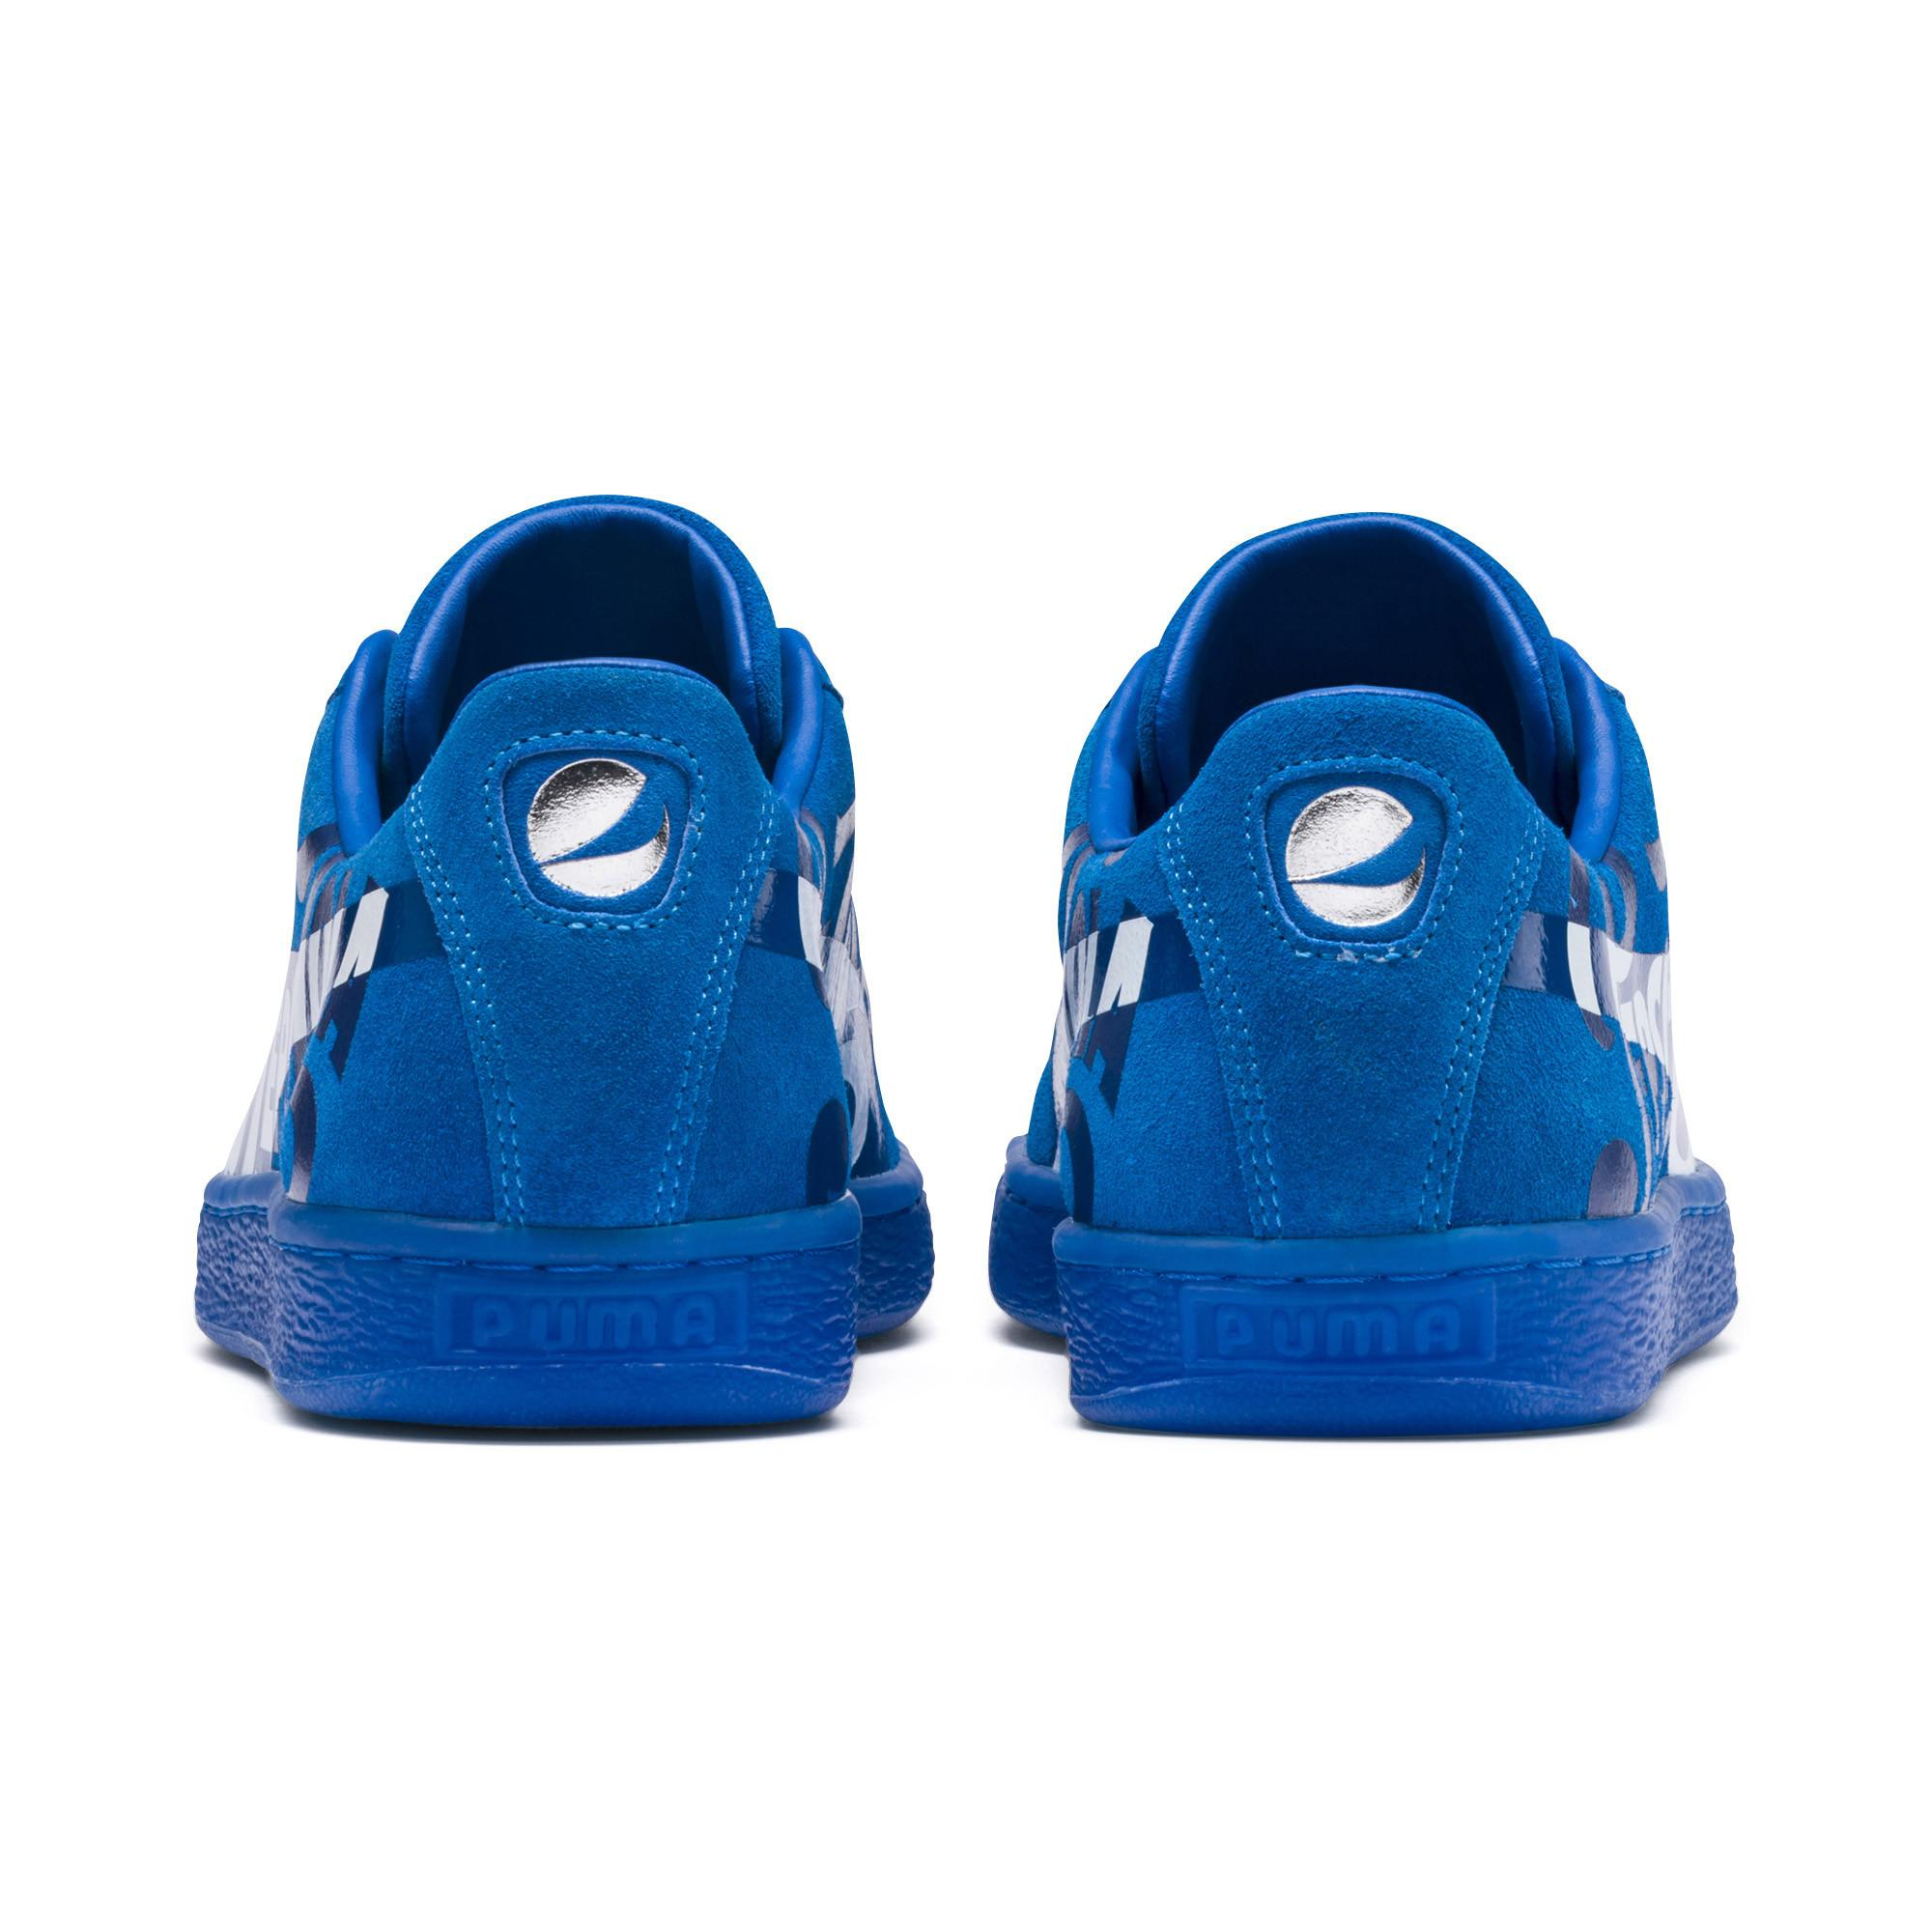 aa19ddcbafb Lyst - PUMA X Pepsi Suede Classic Sneakers in Blue for Men